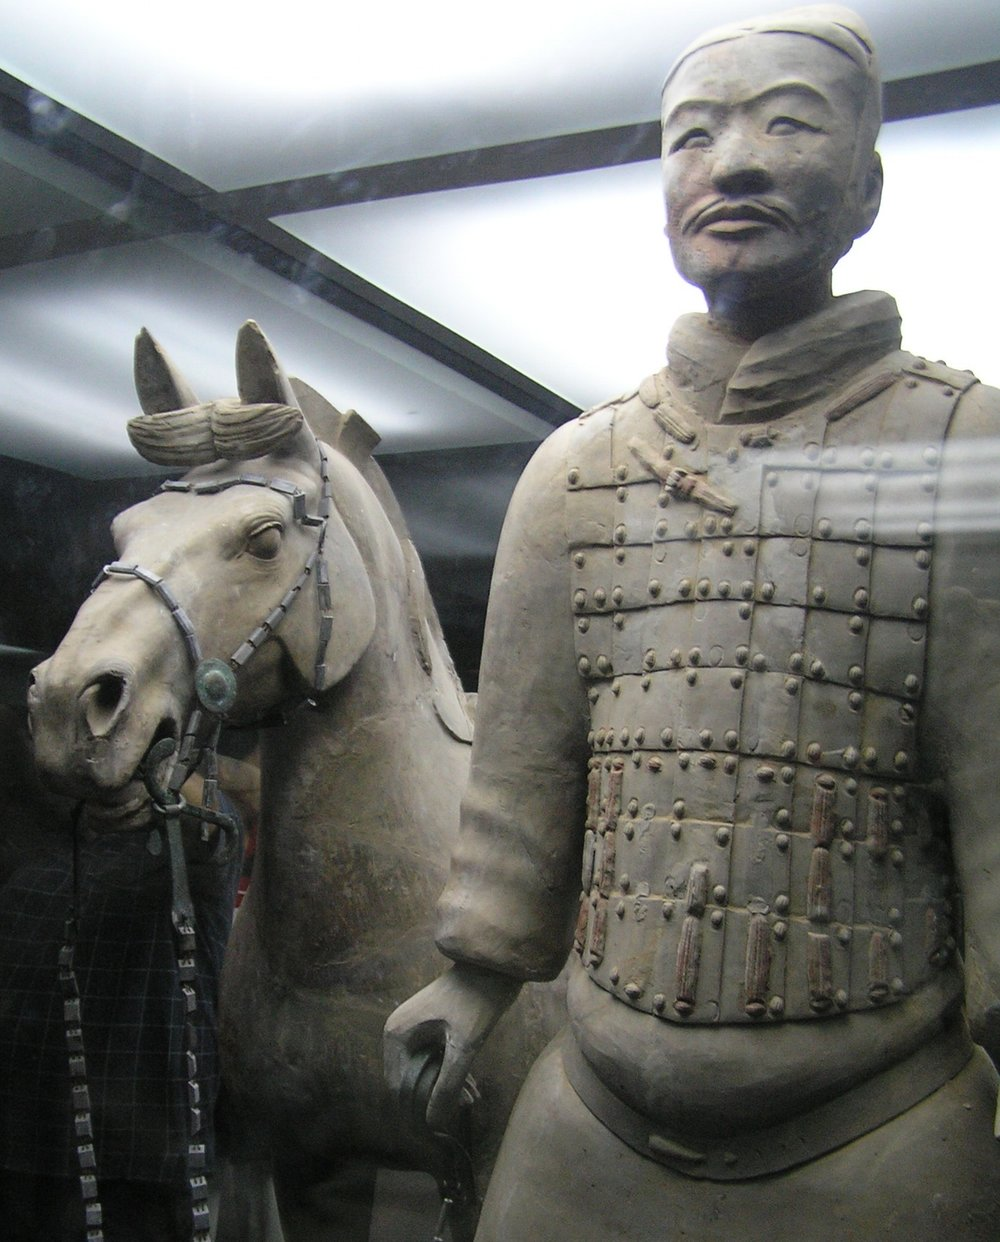 A terracotta warrior got his thumb broken off in an exhibition in the US- is that such a disaster as the Chinese authorities say judging from that smile? The horse is saying nothing.